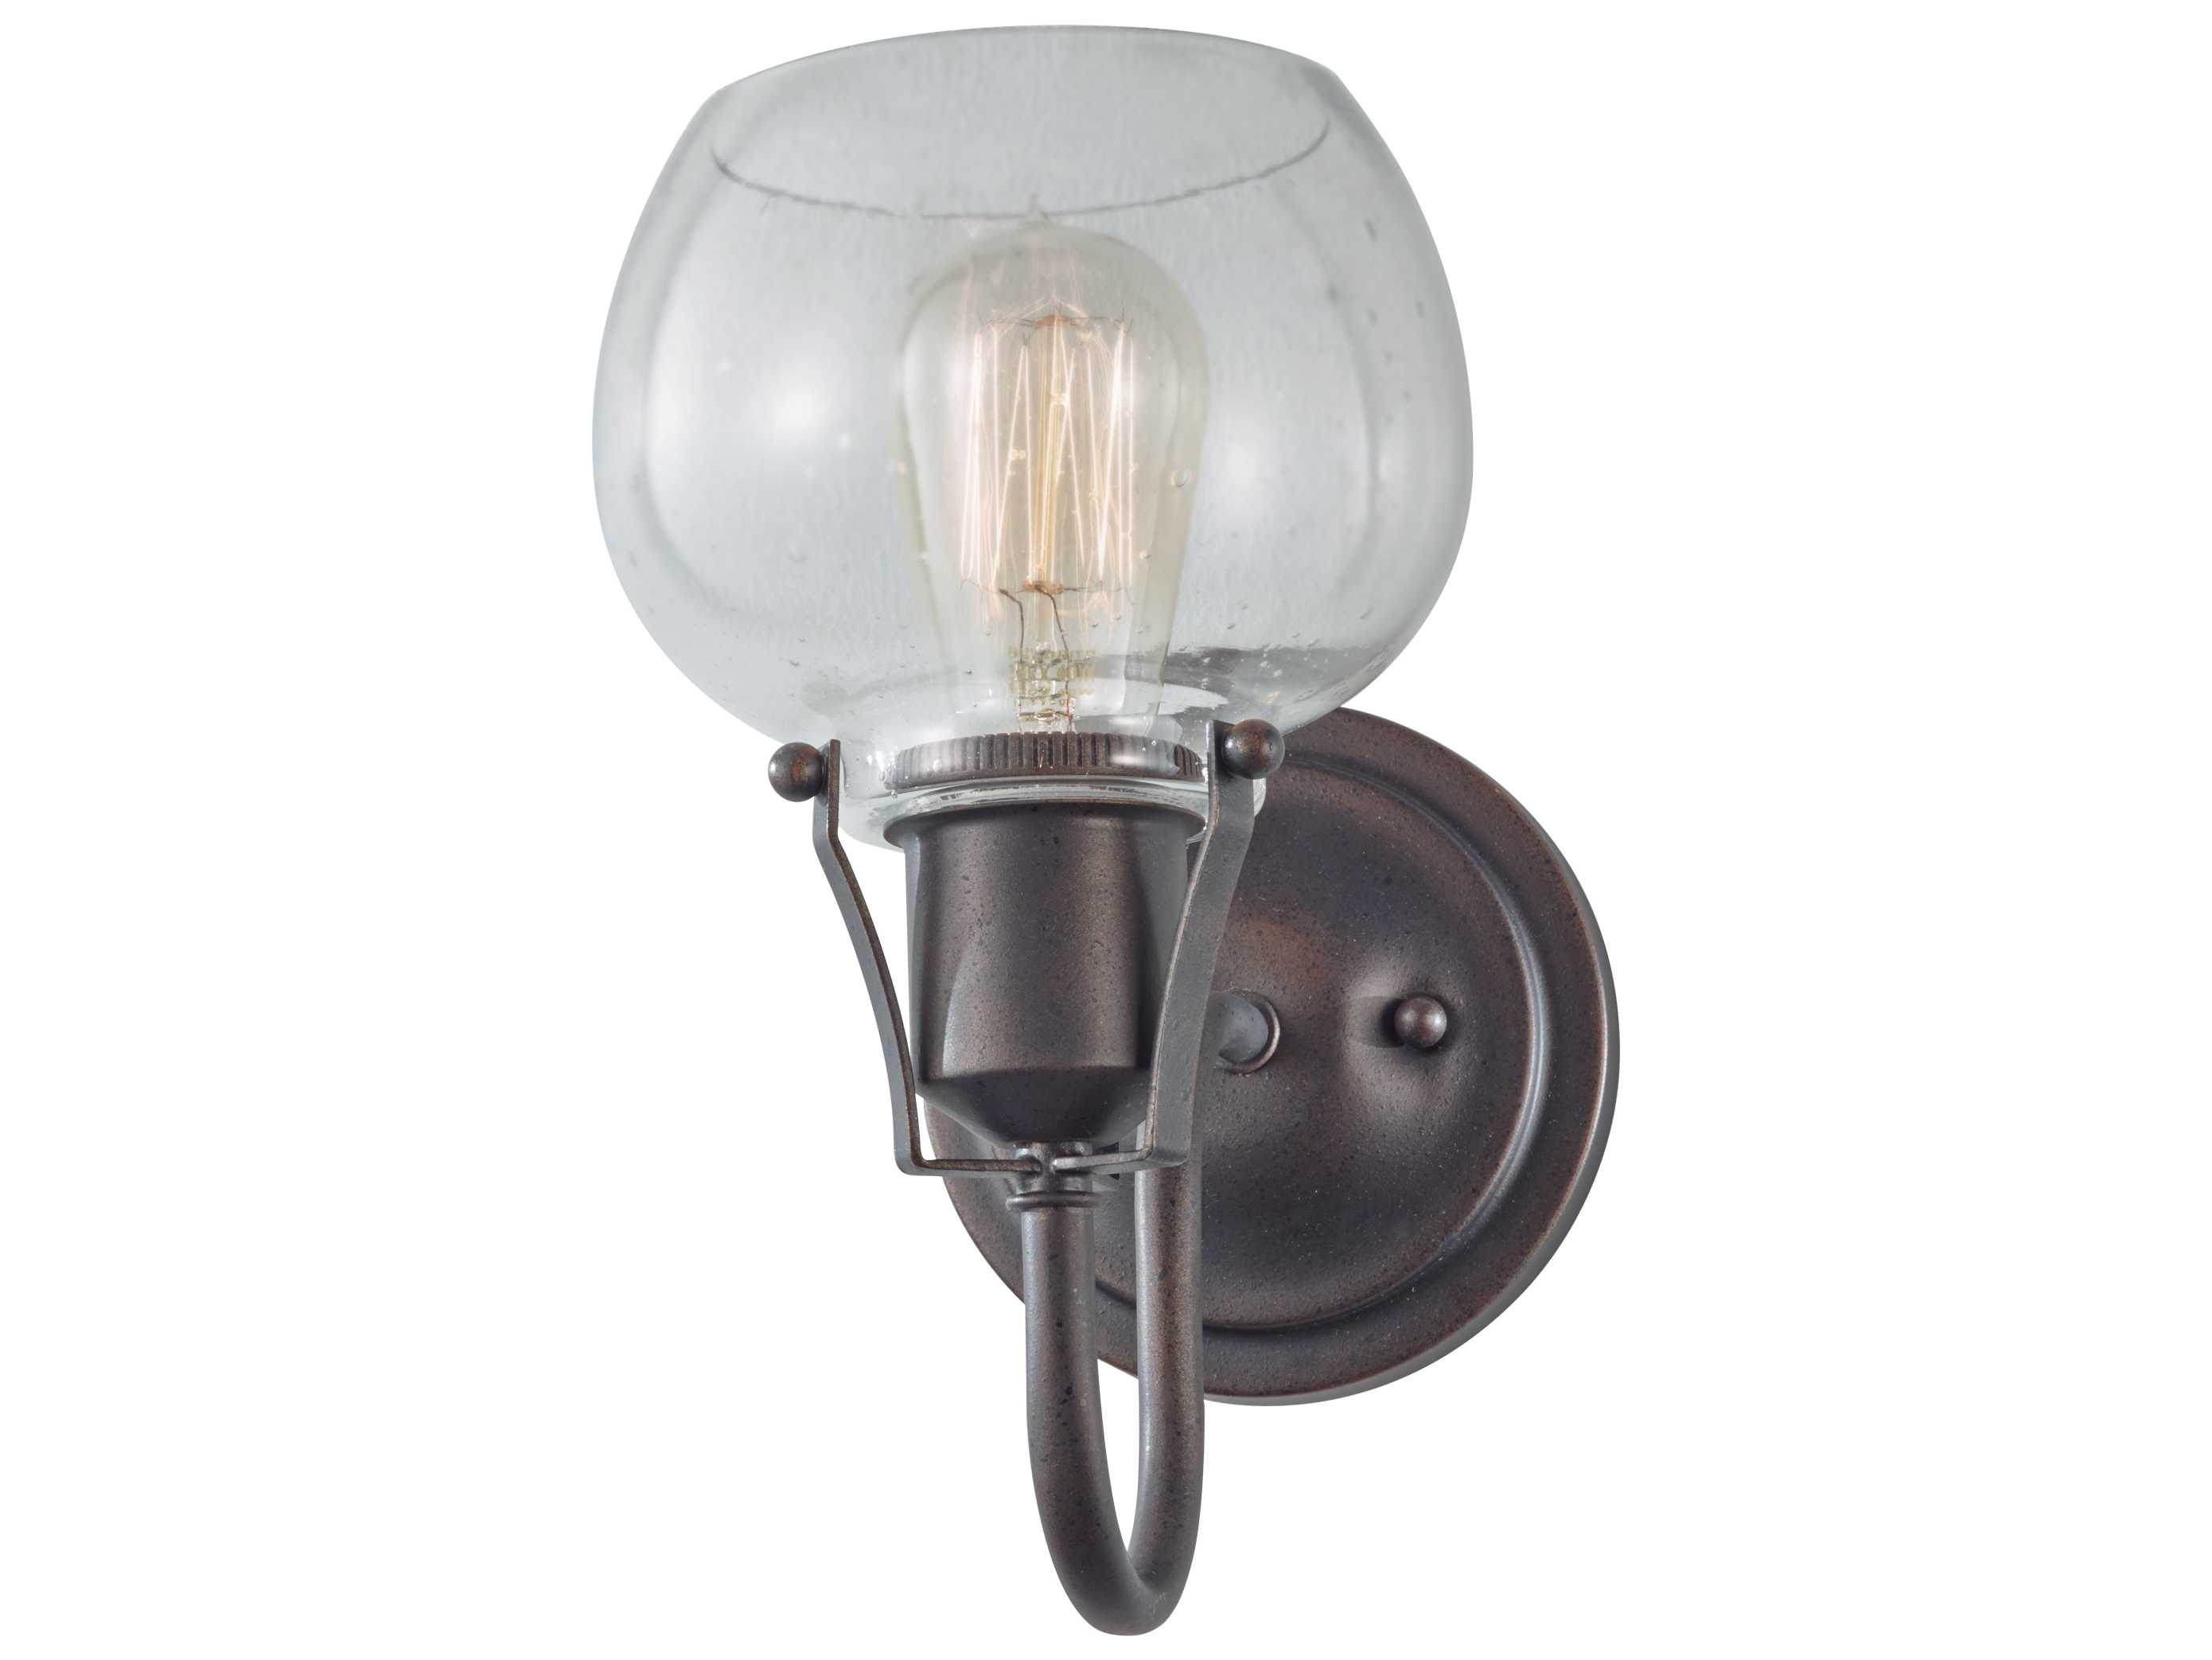 Kichler Barrington 3 Light 22 In Cylinder Vanity Light At: Feiss Urban Renewal Rustic Iron 6'' Wide Wall Sconce With